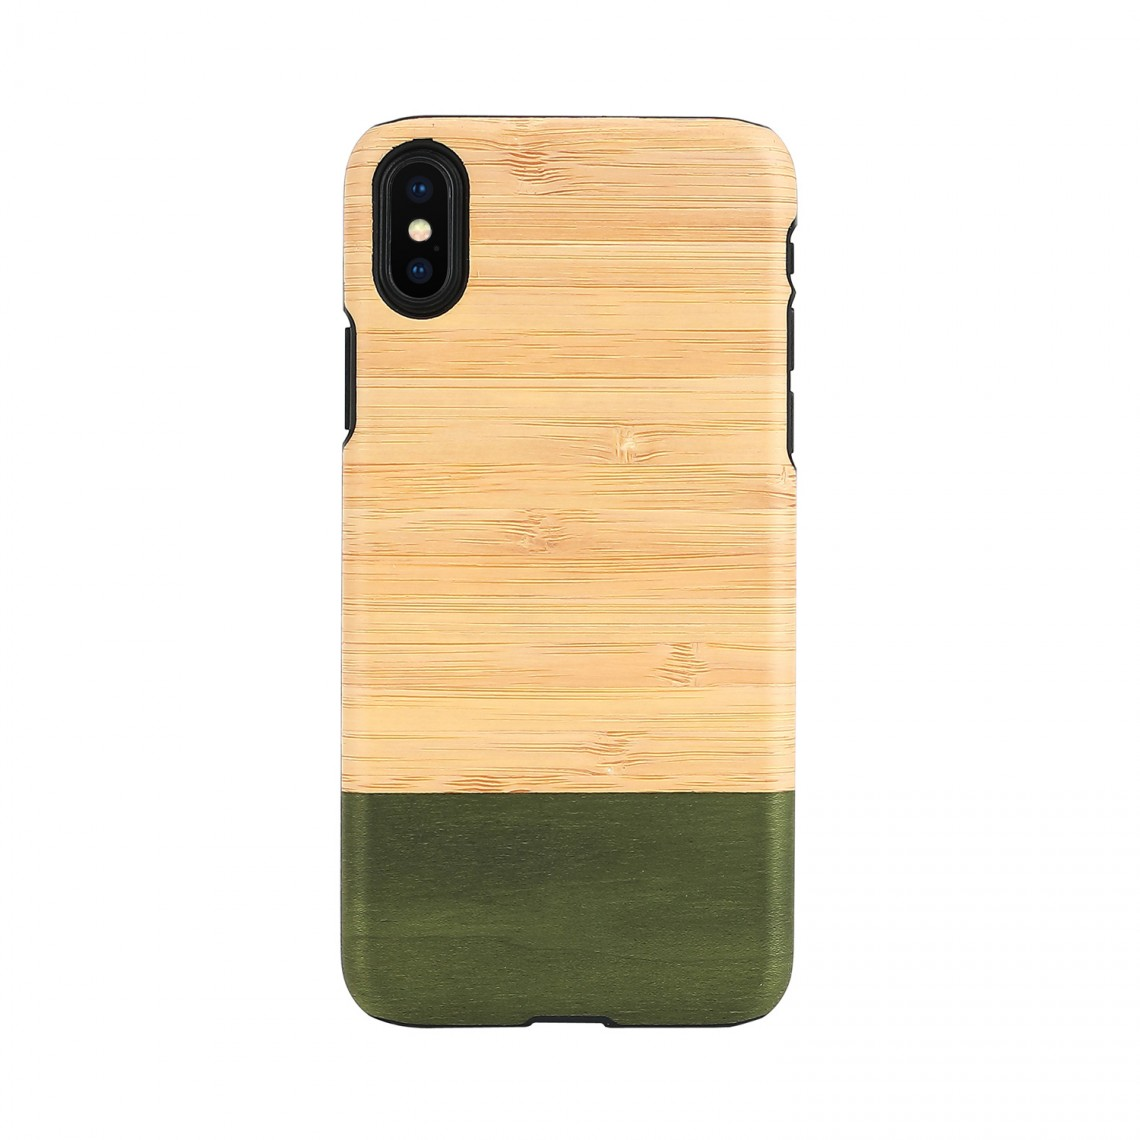 iPhone XS Max ケース 天然木 Man&Wood Bamboo Forest(マンアンドウッド バンブーフォレスト)